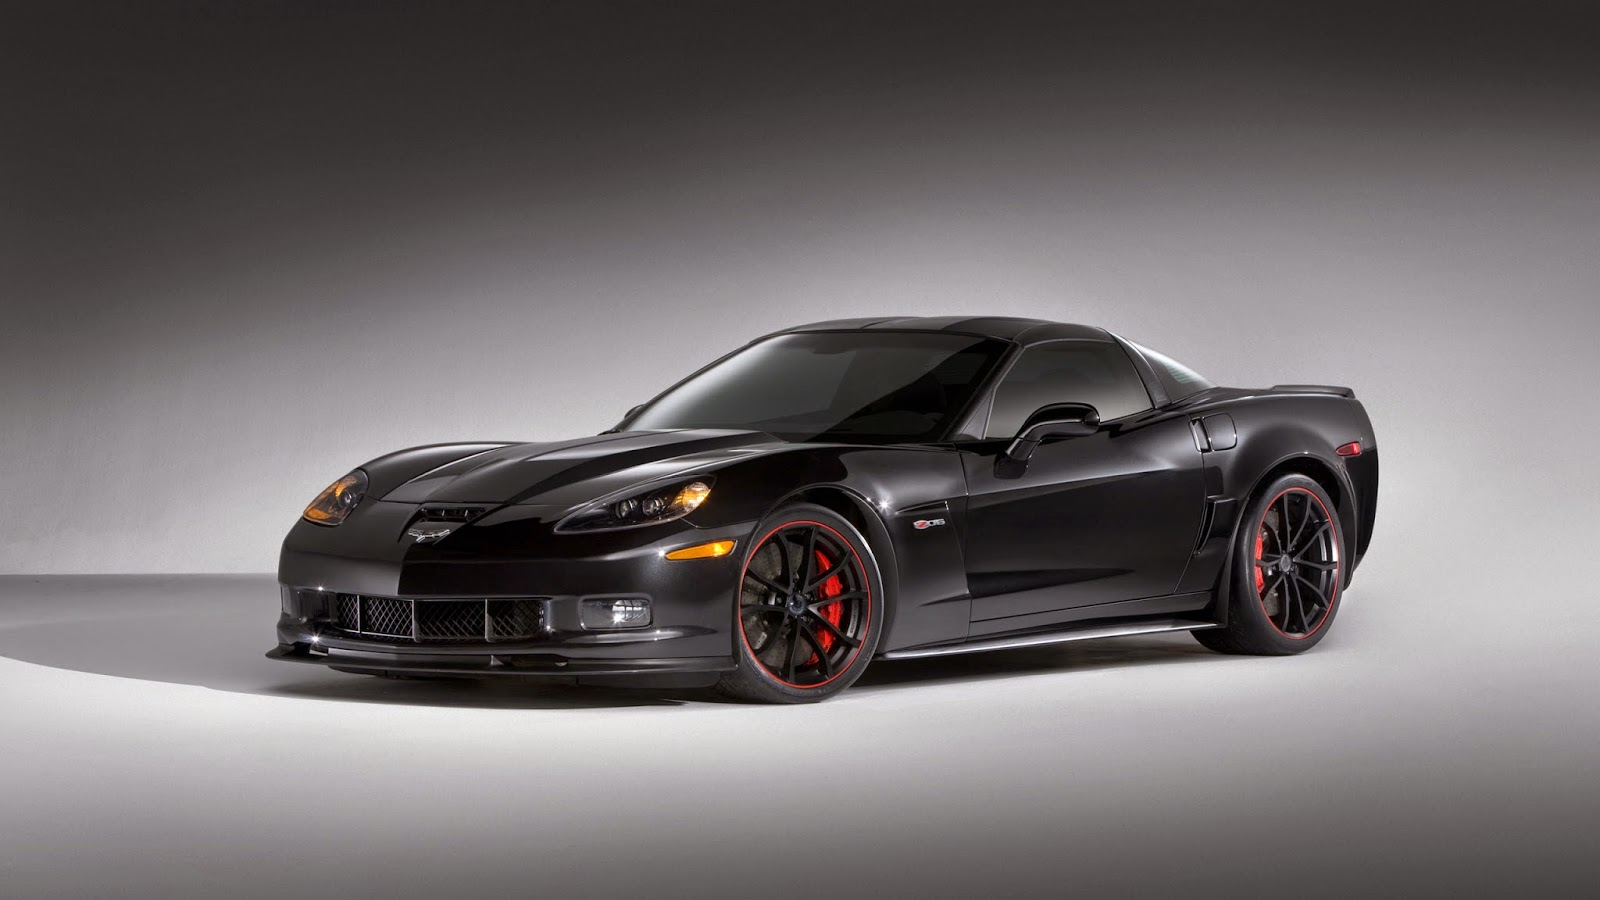 Wallpaper Mobil Sport Chevrolet Corvette